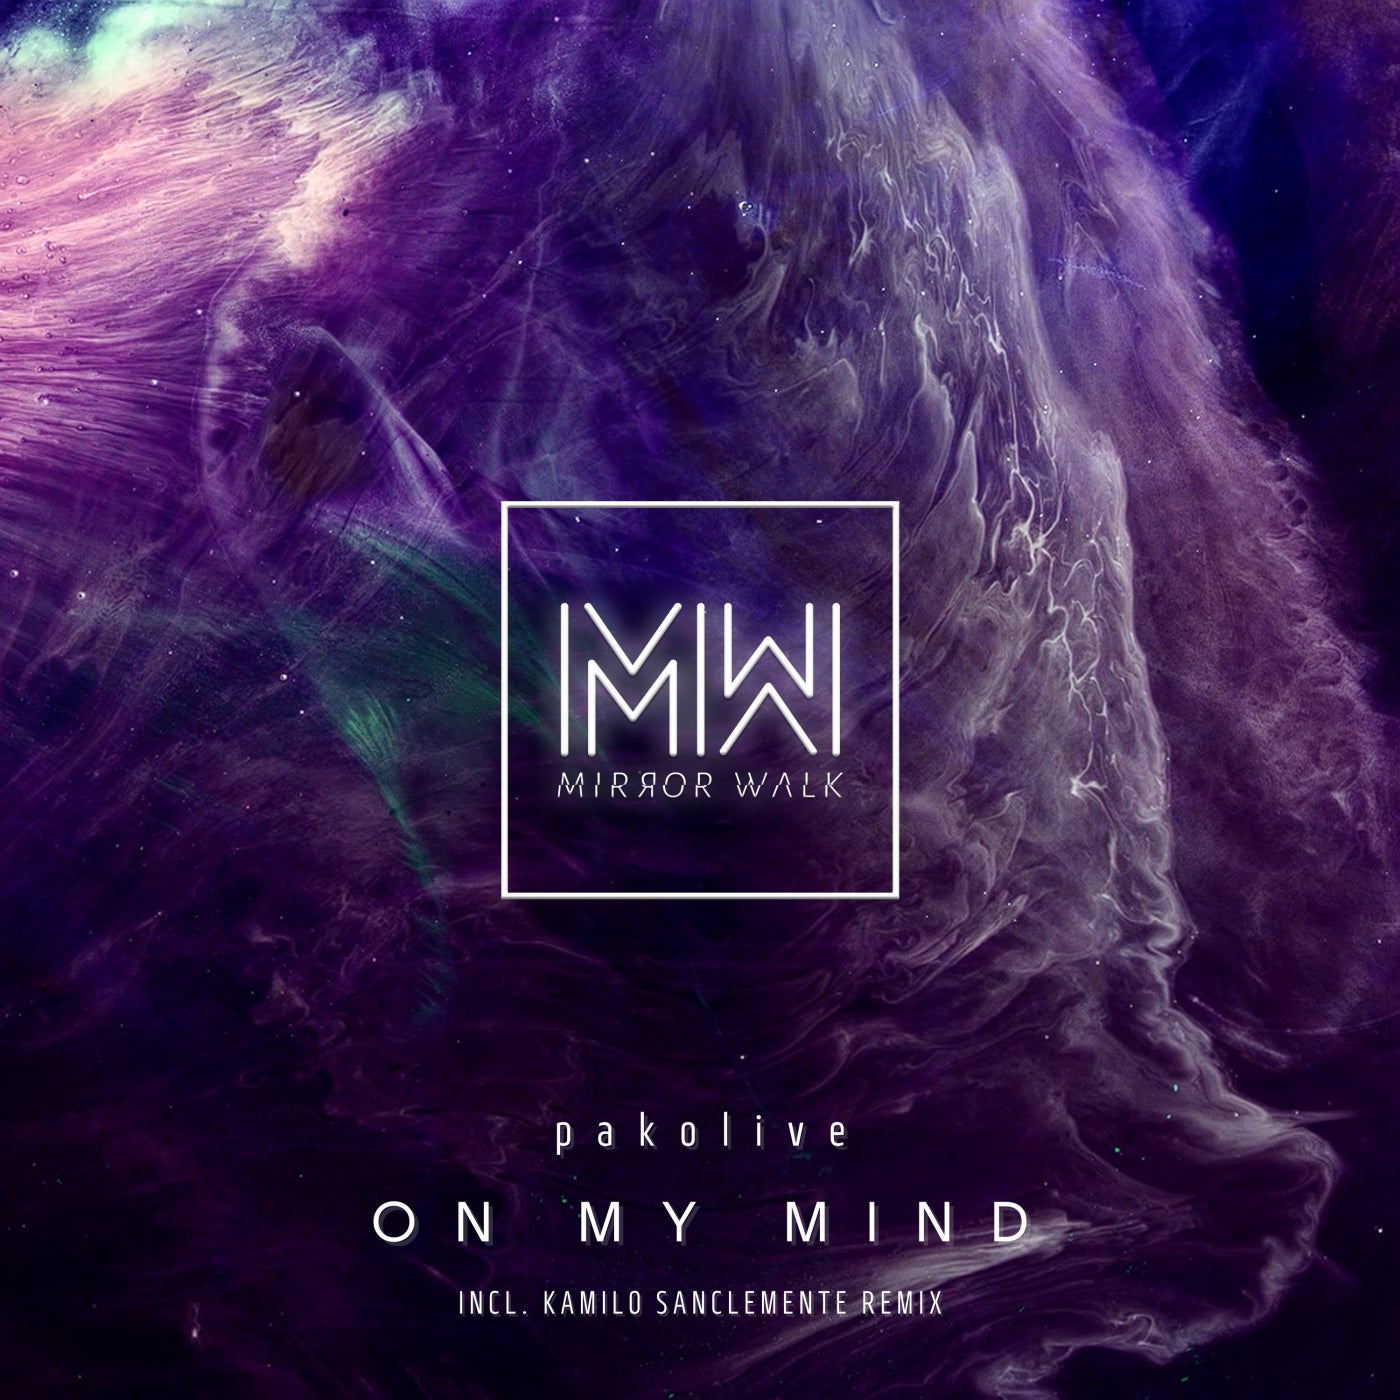 On My Mind (Kamilo Sanclemente Remix)